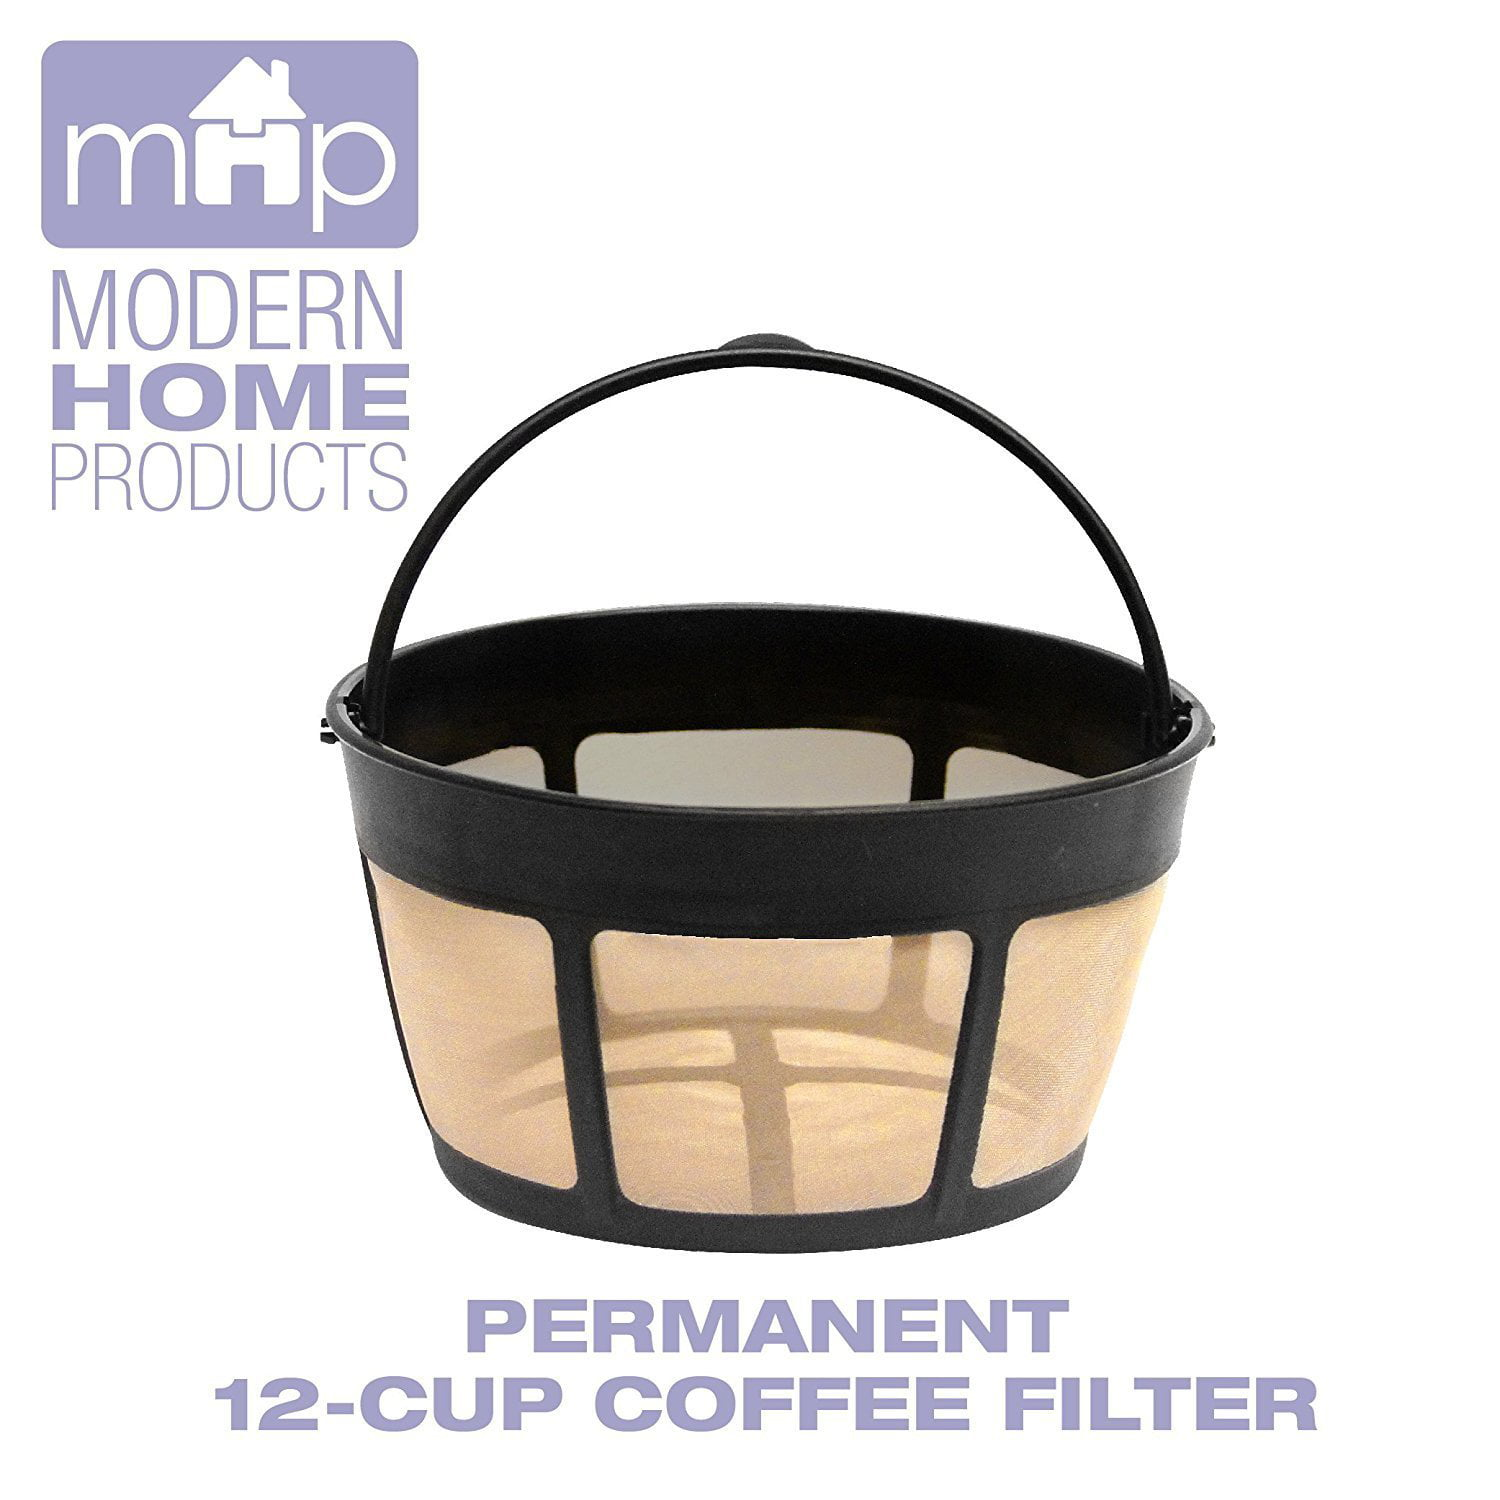 Permanent 12-Cup Basket Shape Gold Tone Coffee Filter Fits All Coffee Makers Using 8-12 Cup Basket Filters by Modern Home Products